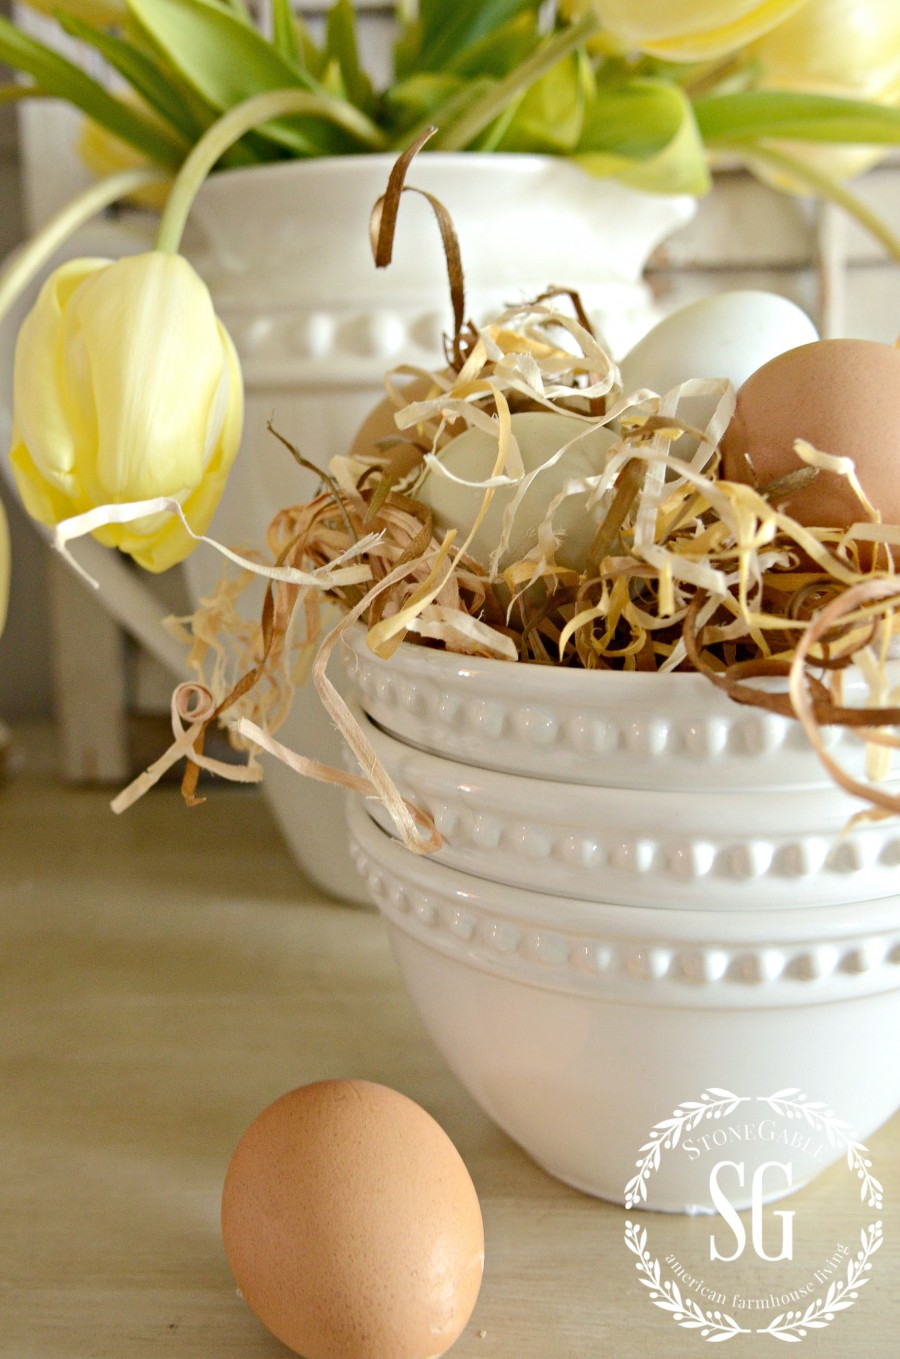 10 MINUTE DECOR-SPRING EDITION- eggs in stack of bowls-stonegableblog.com